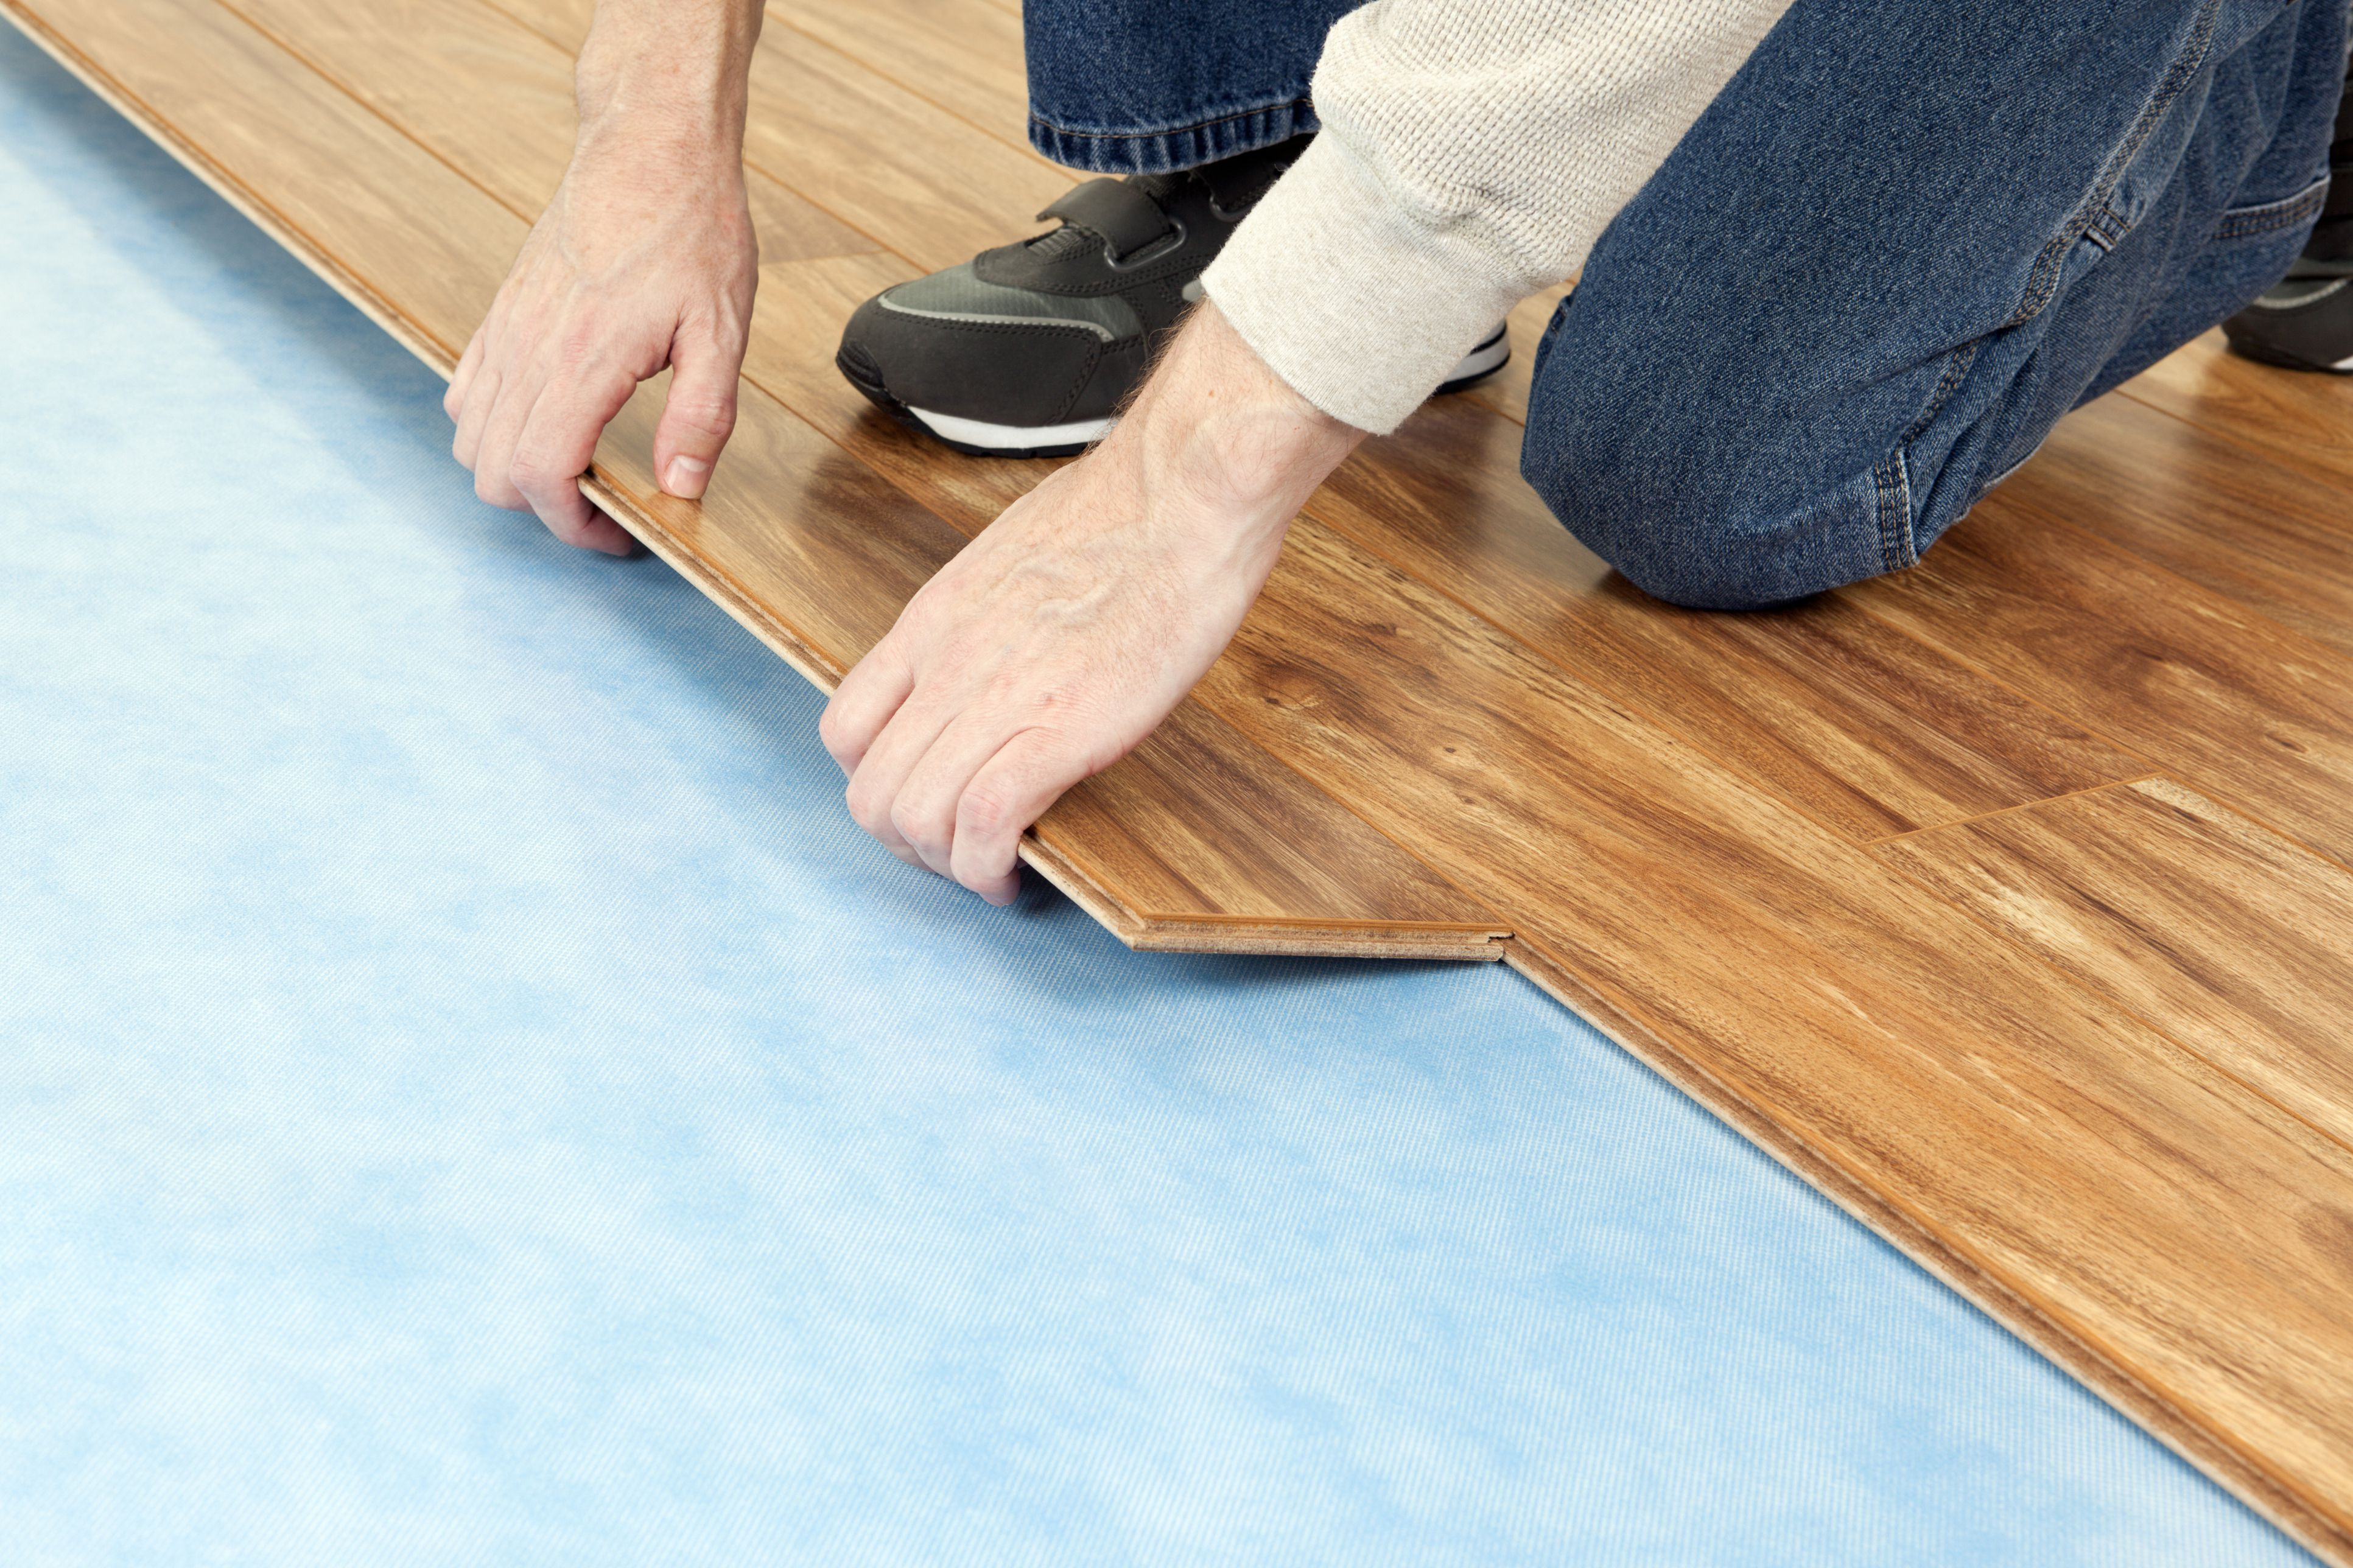 nail down hardwood floor installation cost of flooring underlayment the basics throughout new floor installation 185270632 582b722c3df78c6f6af0a8ab